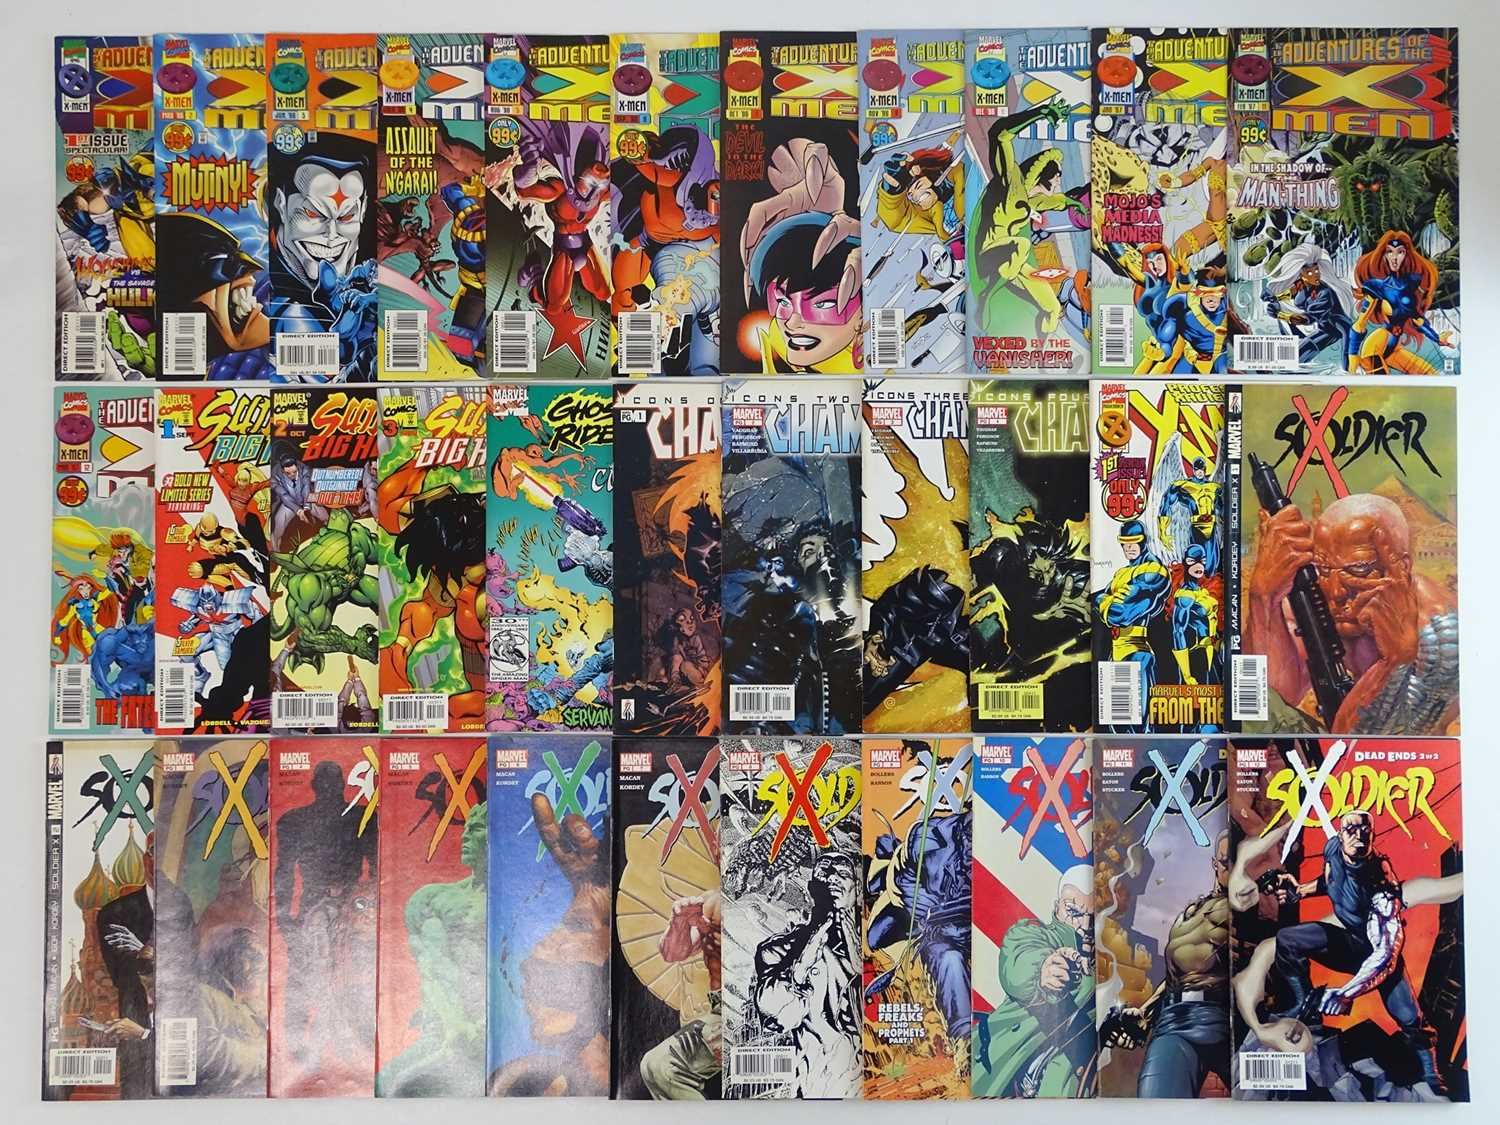 ADVENTURES OF THE X-MEN, SUNFIRE & BIG HERO 6, GHOST RIDER & CABLE, CHAMBER, SOLDIER X, PROFESSOR